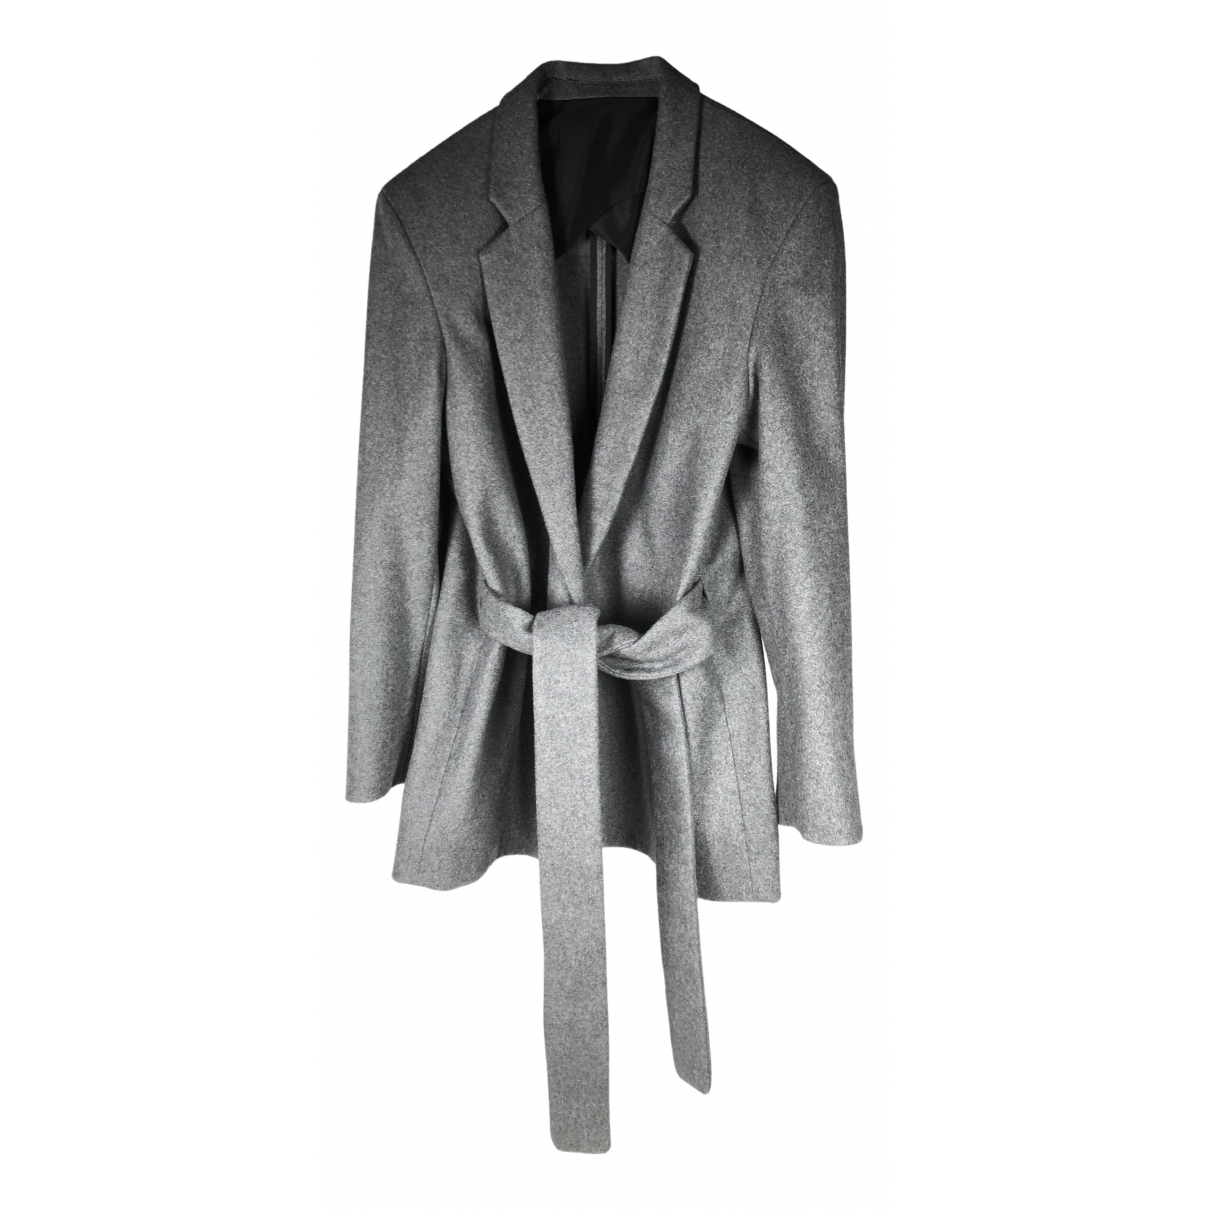 Acne Studios \N Grey Wool jacket for Women 38 FR